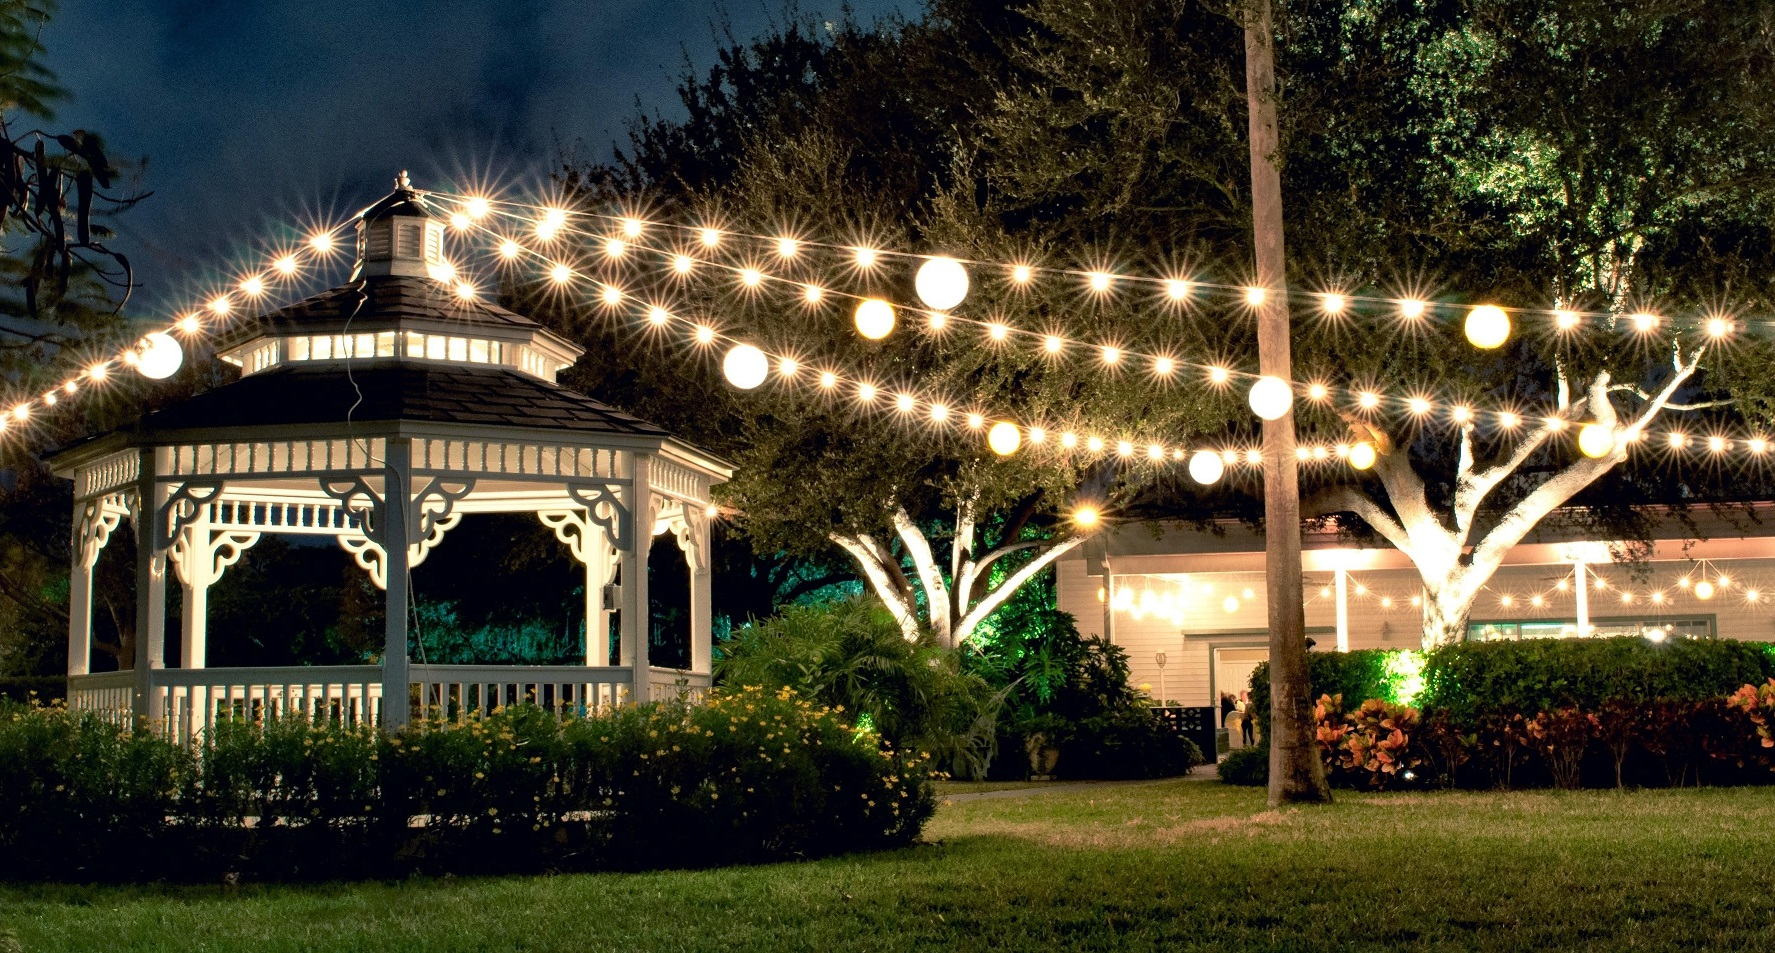 Tampa lights tampa lights is a professional and affordable lighting company we specialize in creating elegant lighting displays and designs arubaitofo Gallery